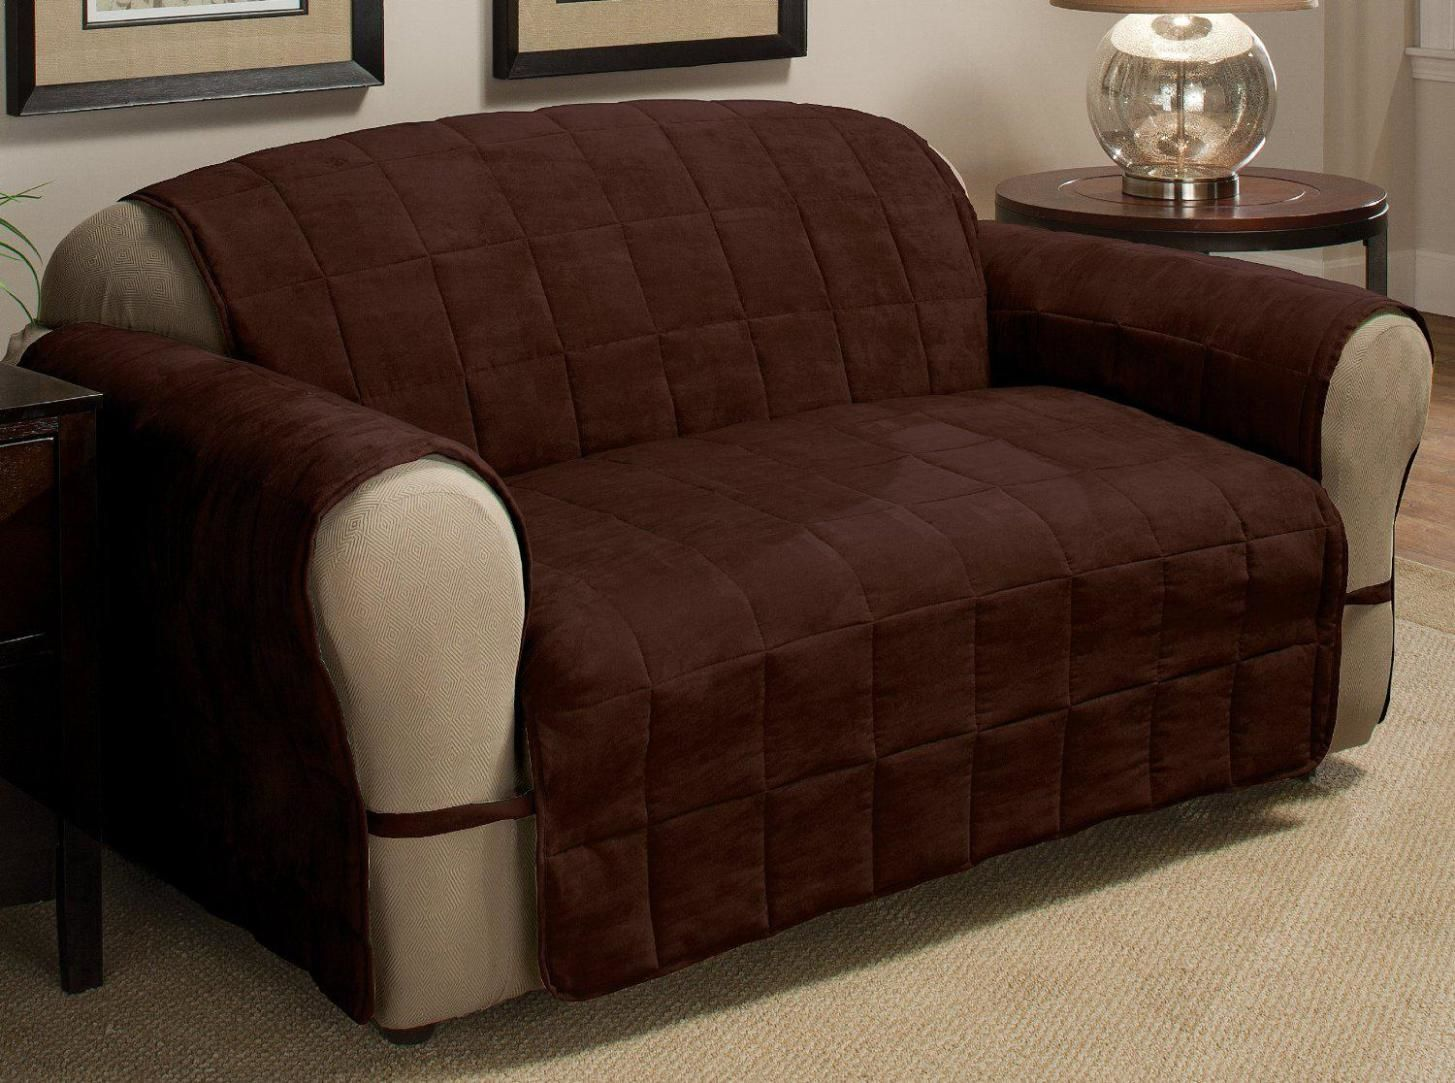 finest sofa slipcovers walmart gallery-Top sofa Slipcovers Walmart Wallpaper